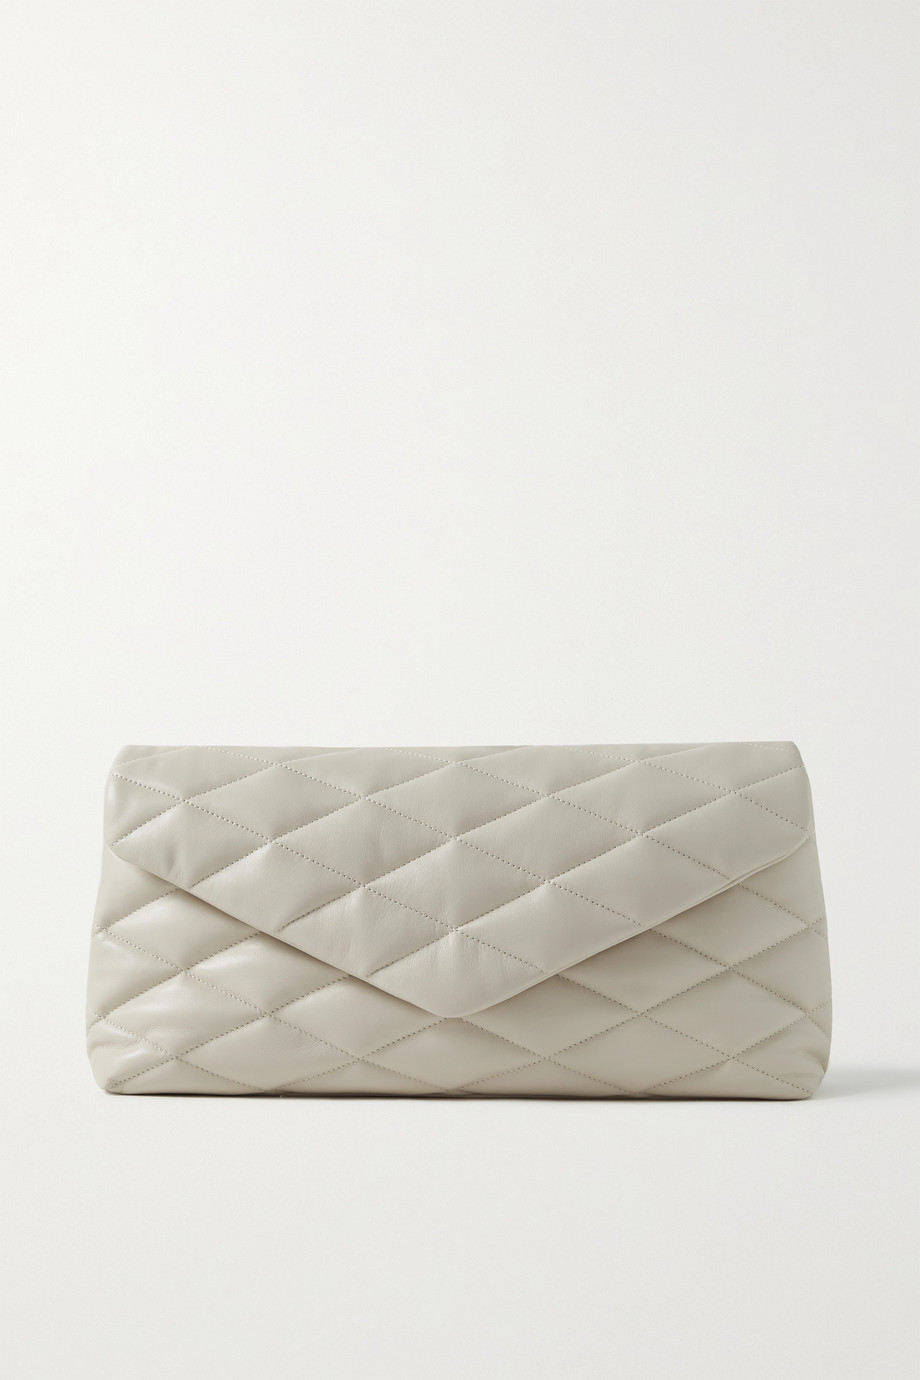 SAINT LAURENT Sade quilted leather clutch